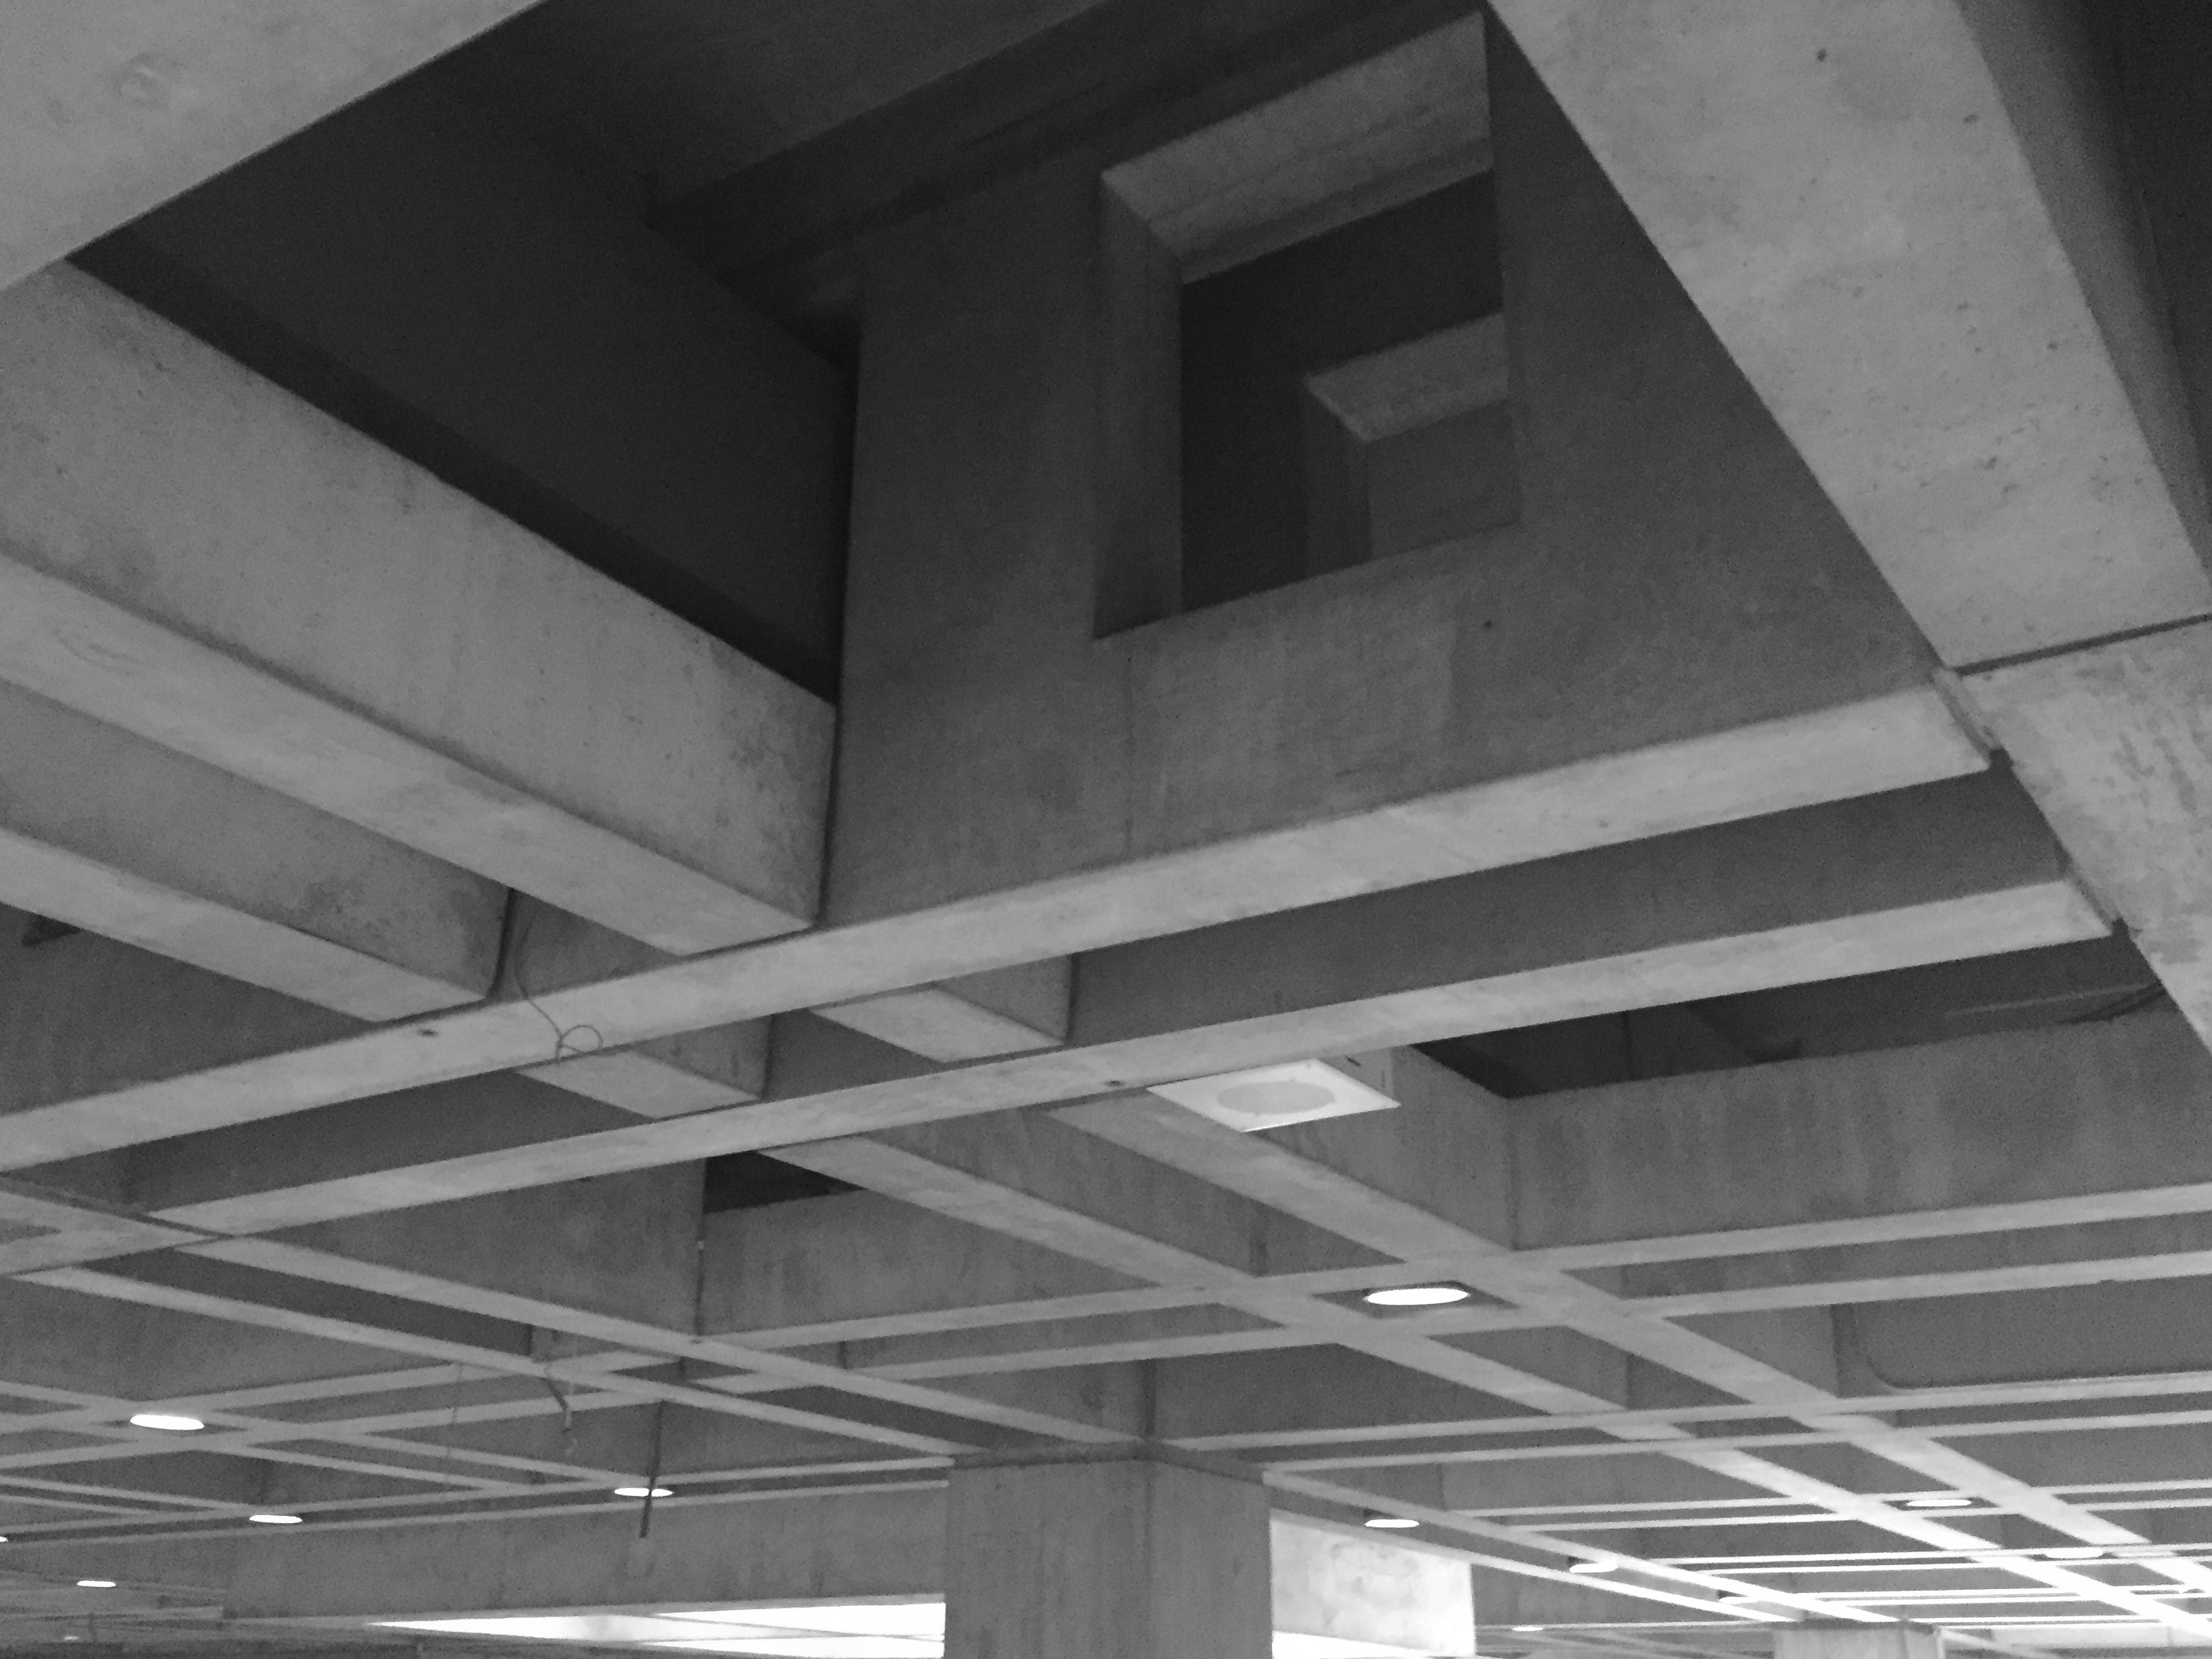 8 uses of concrete fah 198 05 government center for Concrete diction